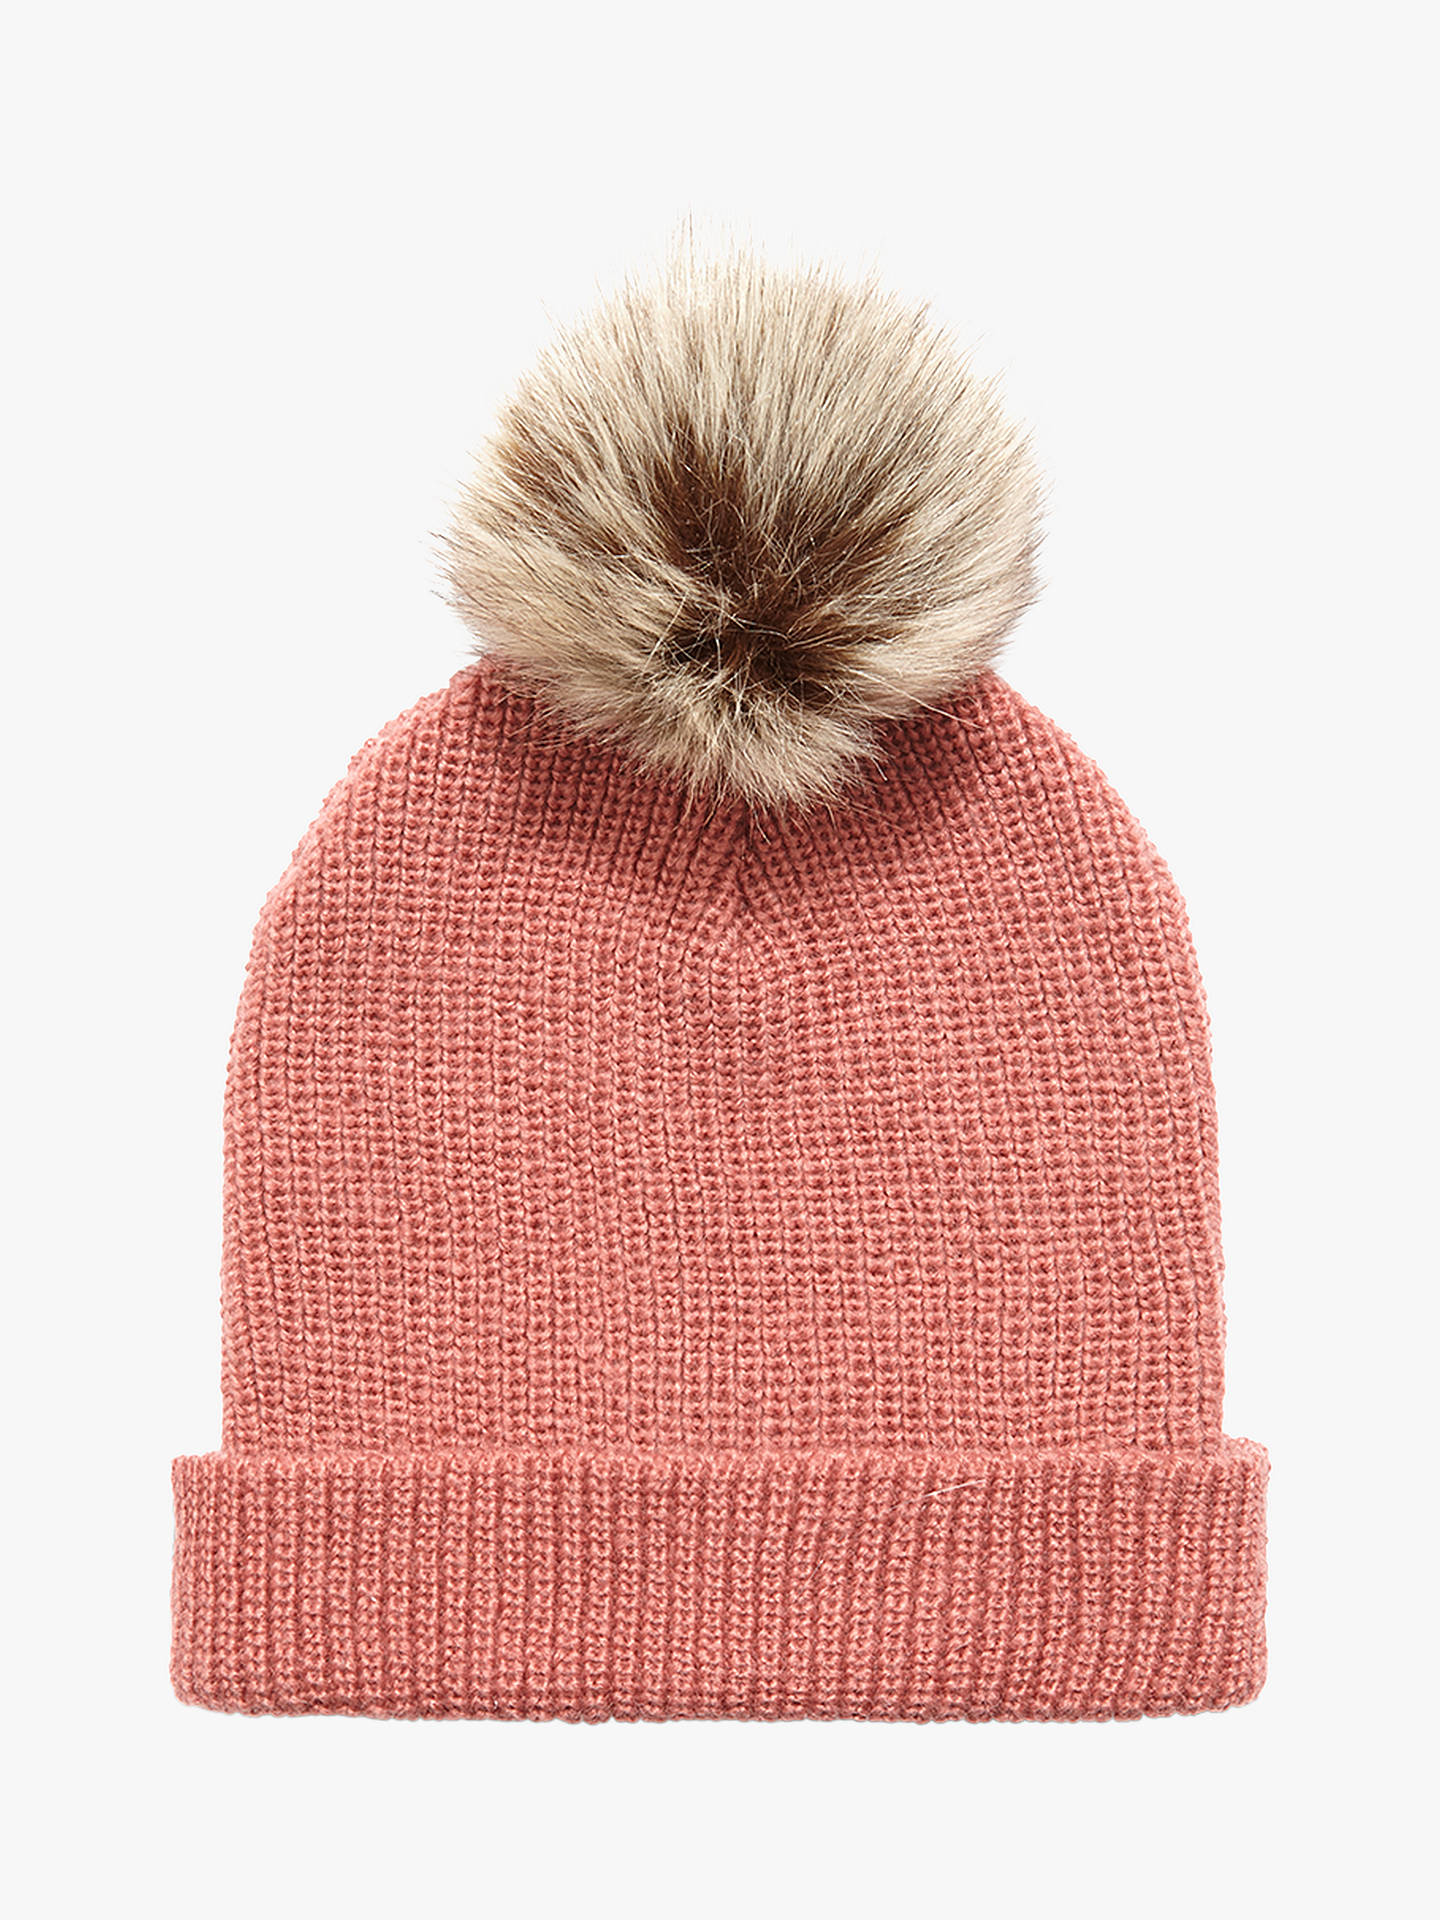 306208c9e5b Buy Phase Eight Violetta Pom Pom Beanie Hat